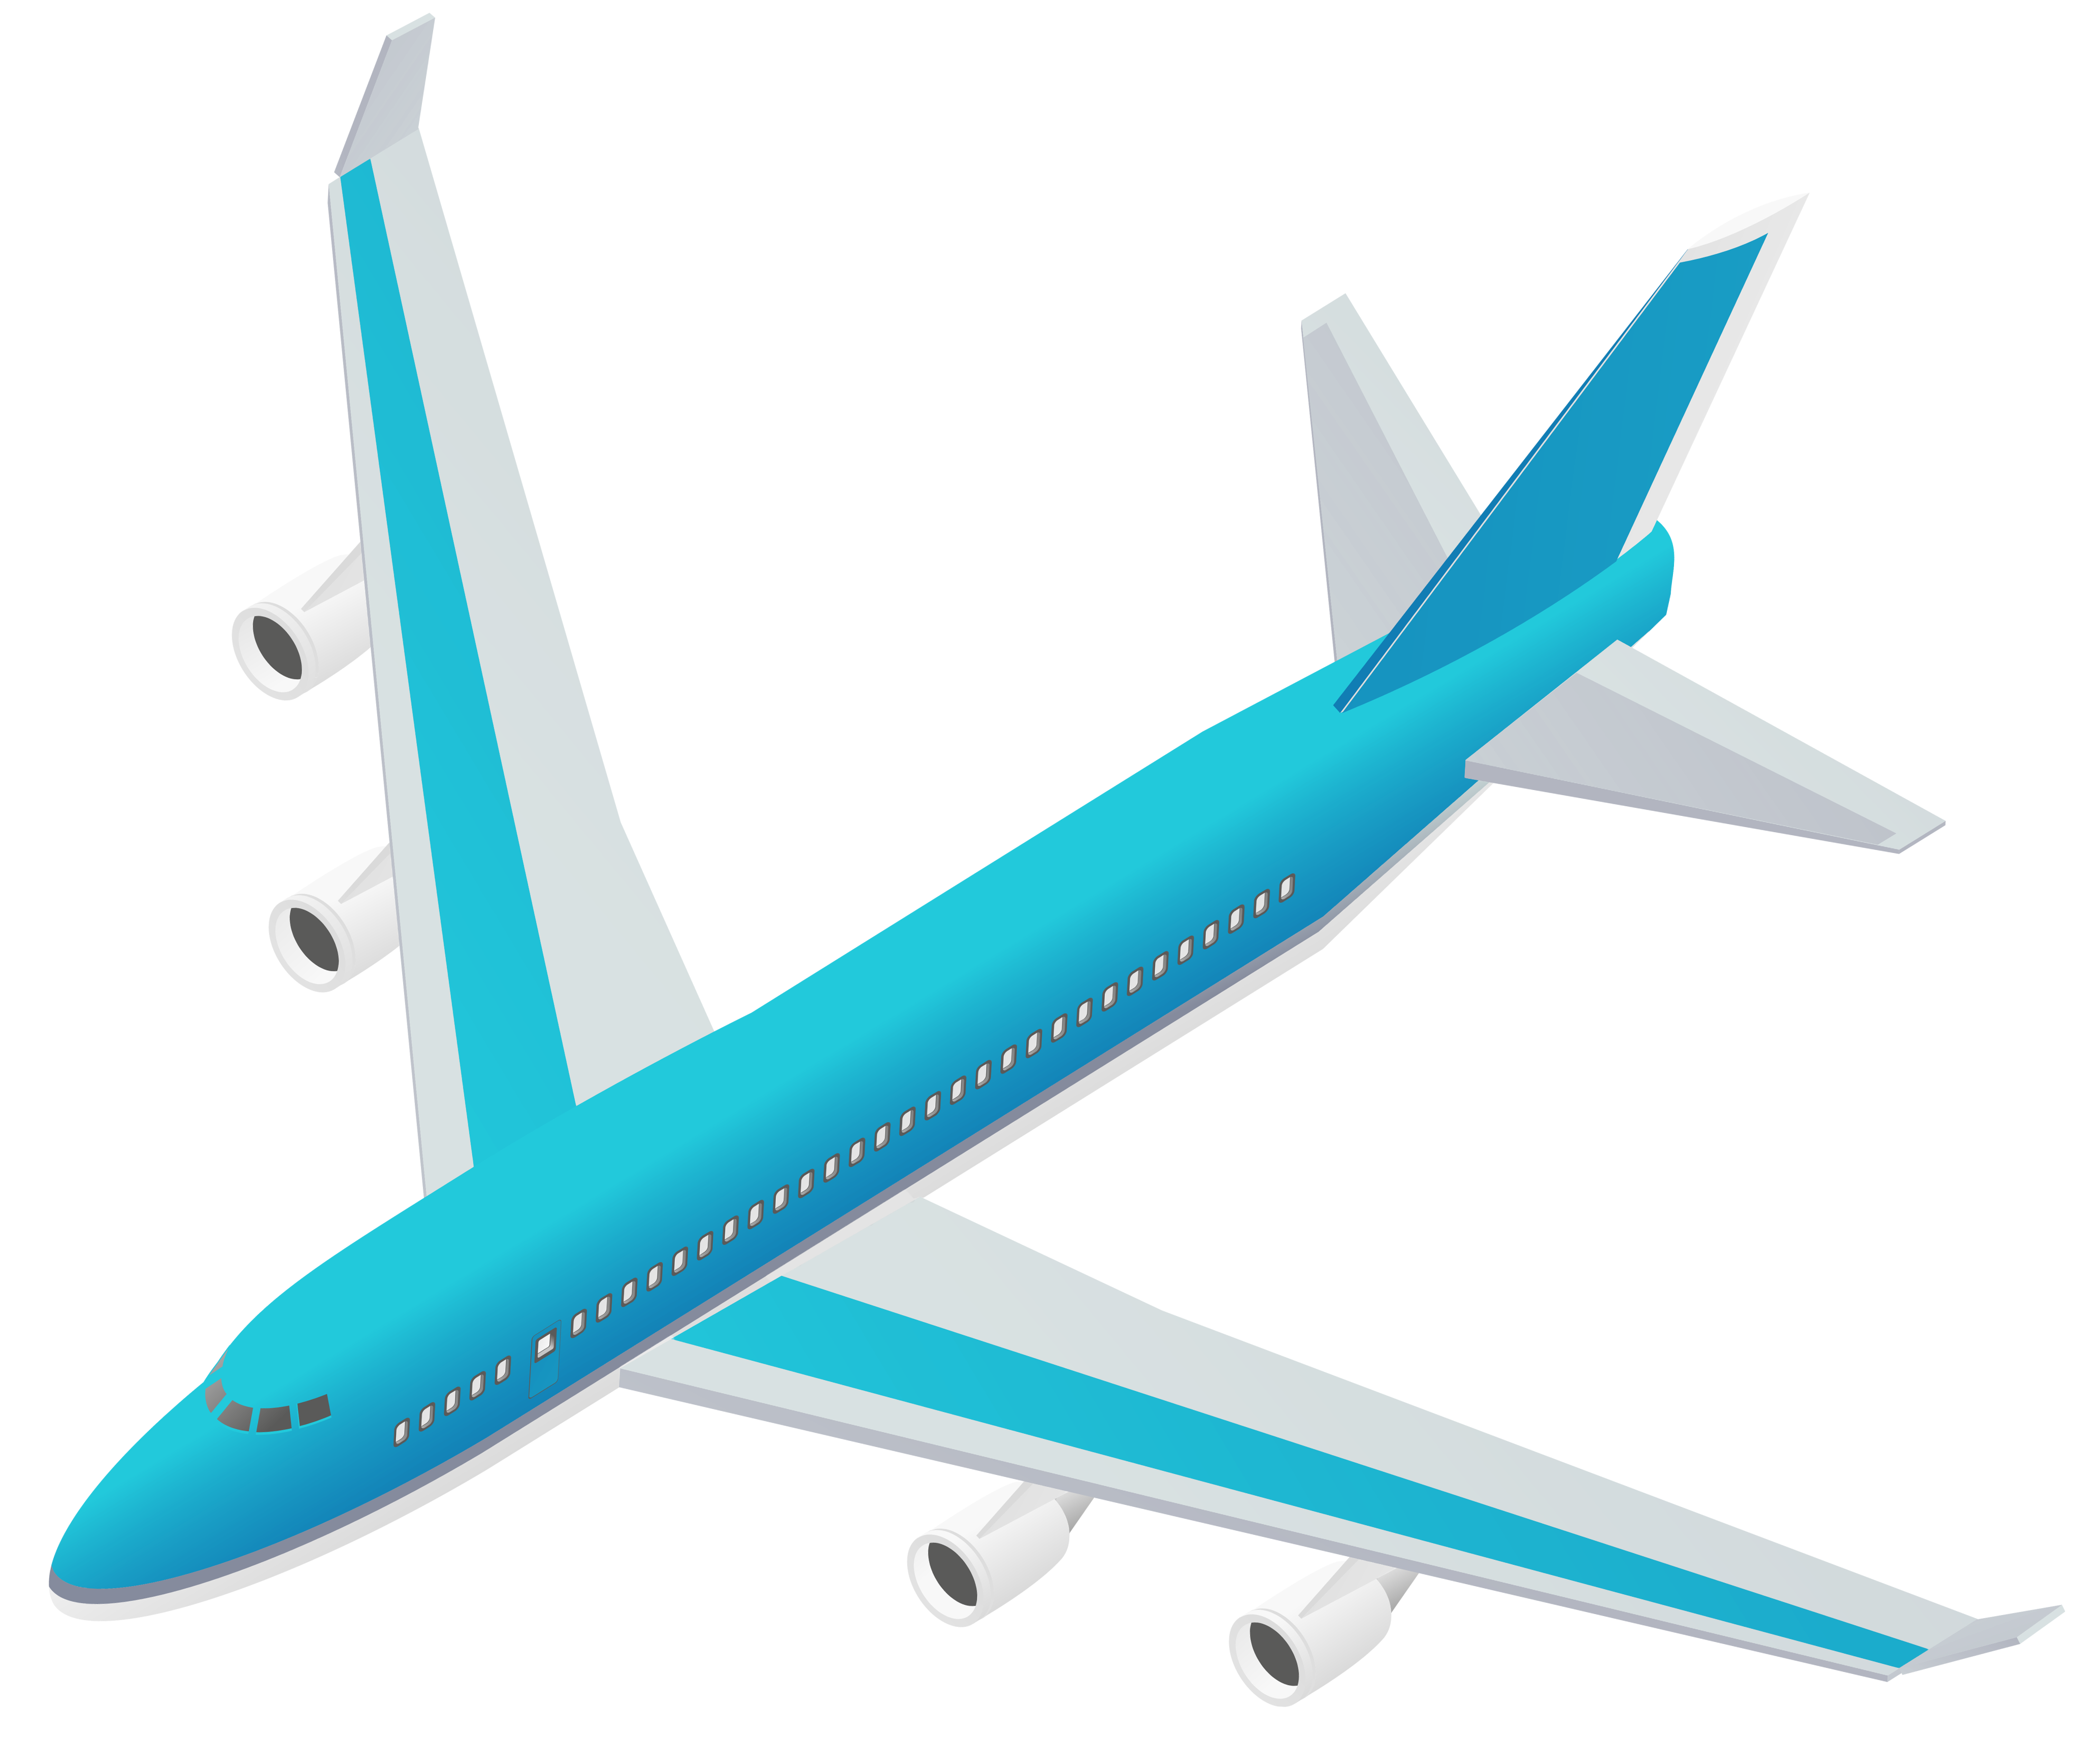 4136x3431 Blue Airplane Transparent Png Vector Clipartu200b Gallery